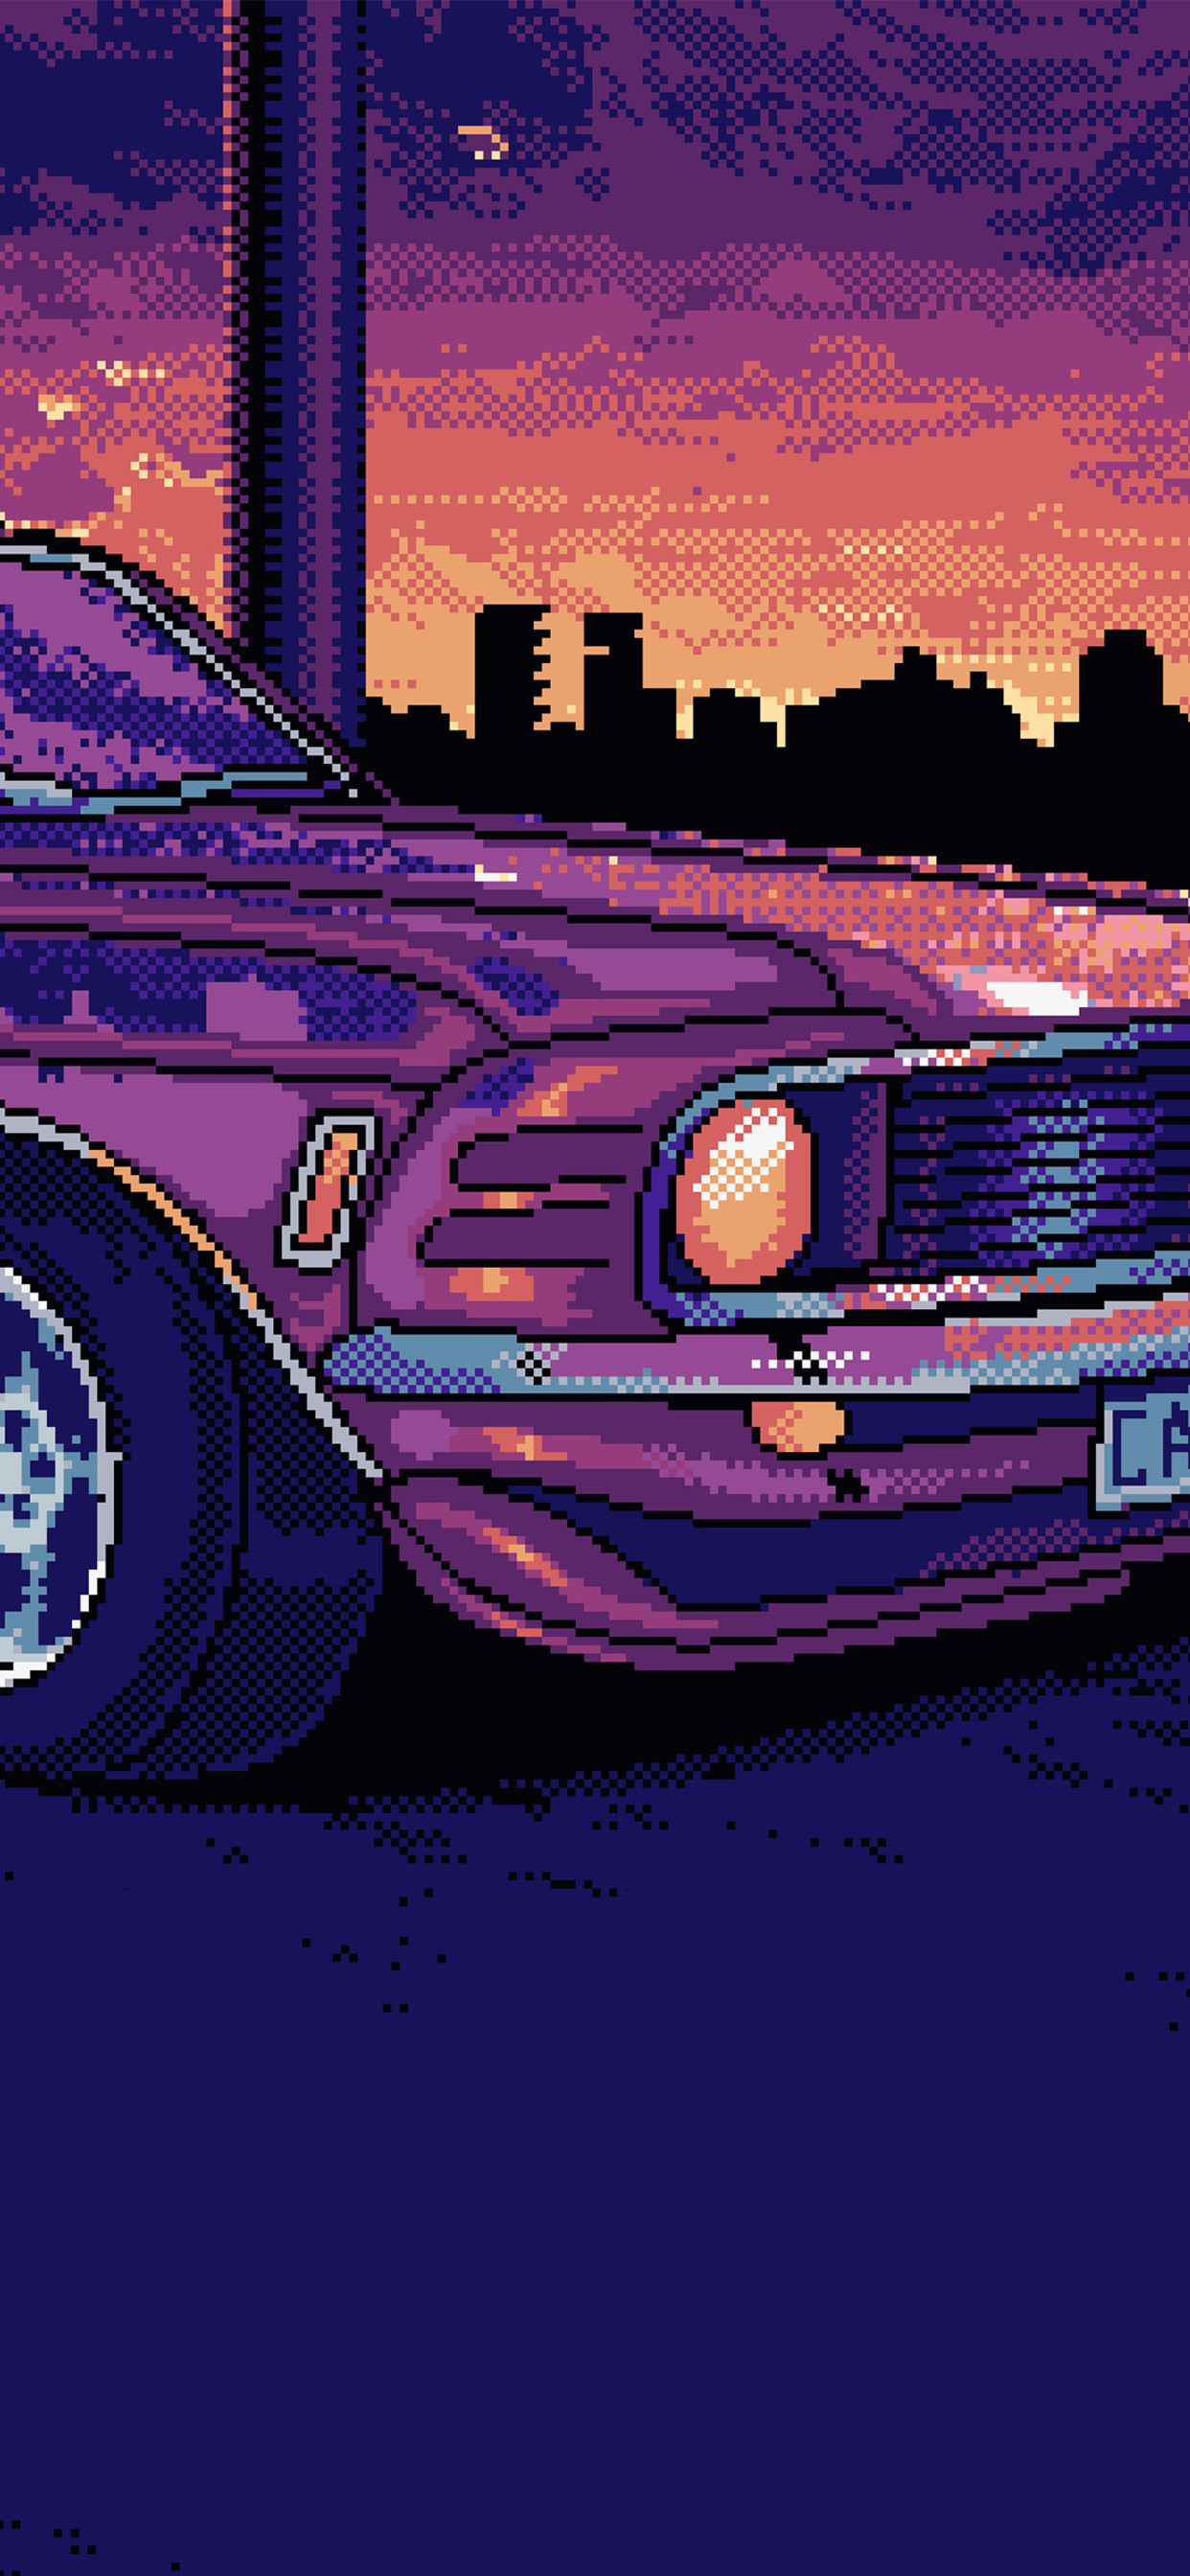 8 Bit Mustang Iphone Xs Max Hd 4k Wallpapers Images - Car Night Anime Gif , HD Wallpaper & Backgrounds